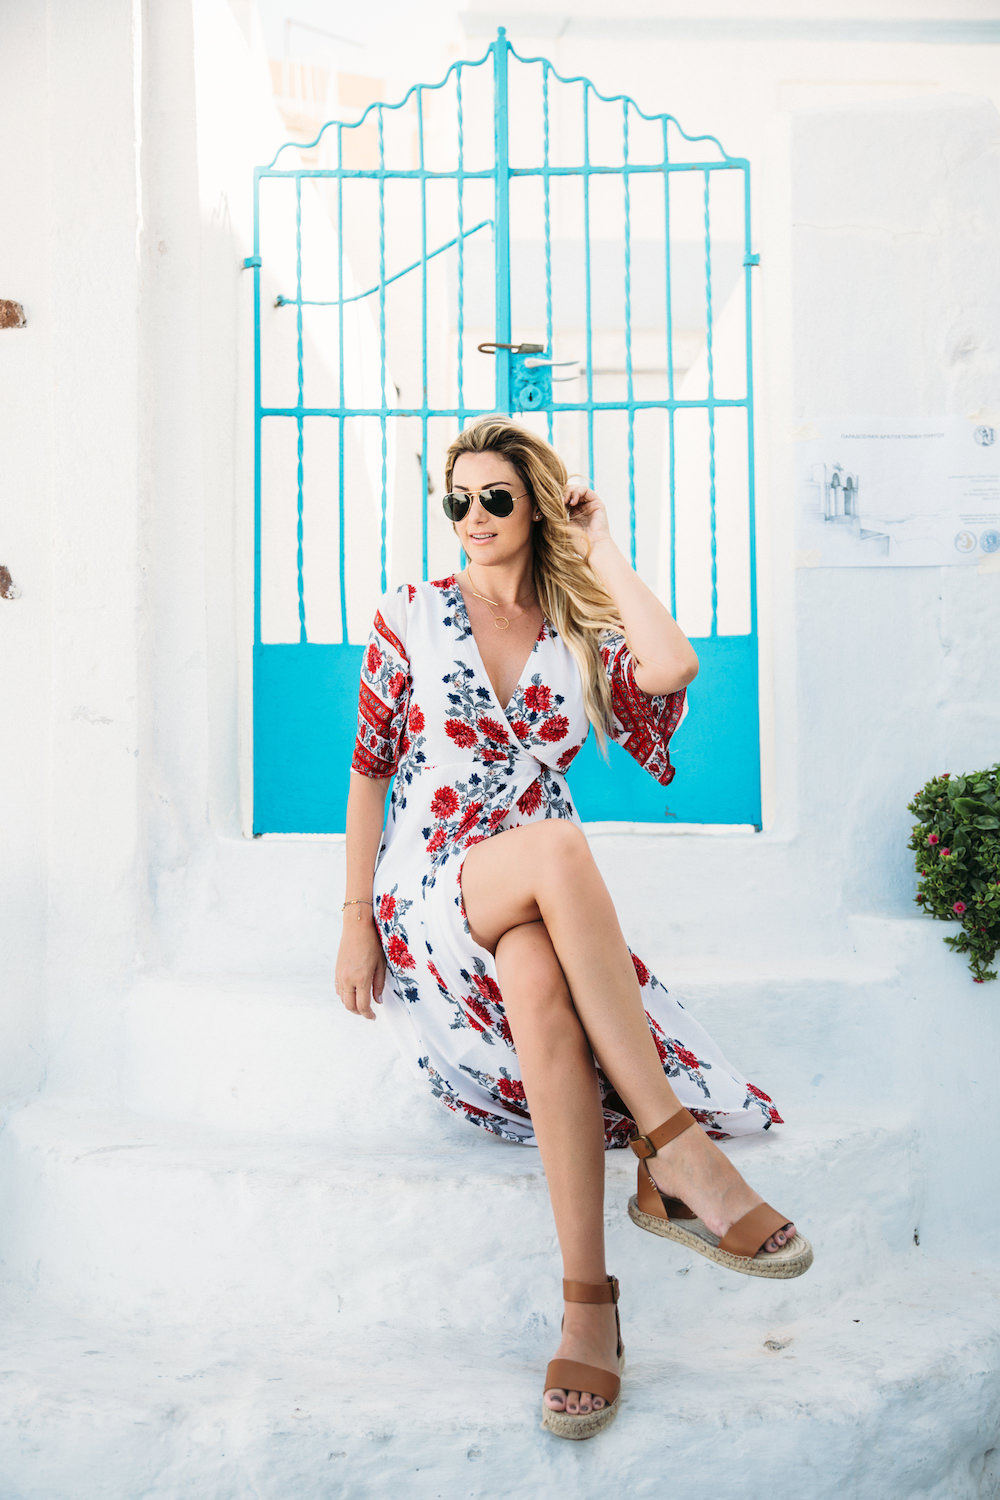 Dash of Darling shares her travels to Santorini, Greece with Royal Caribbean Cruises while wearing a Reverse dress from Revolve Clothing.